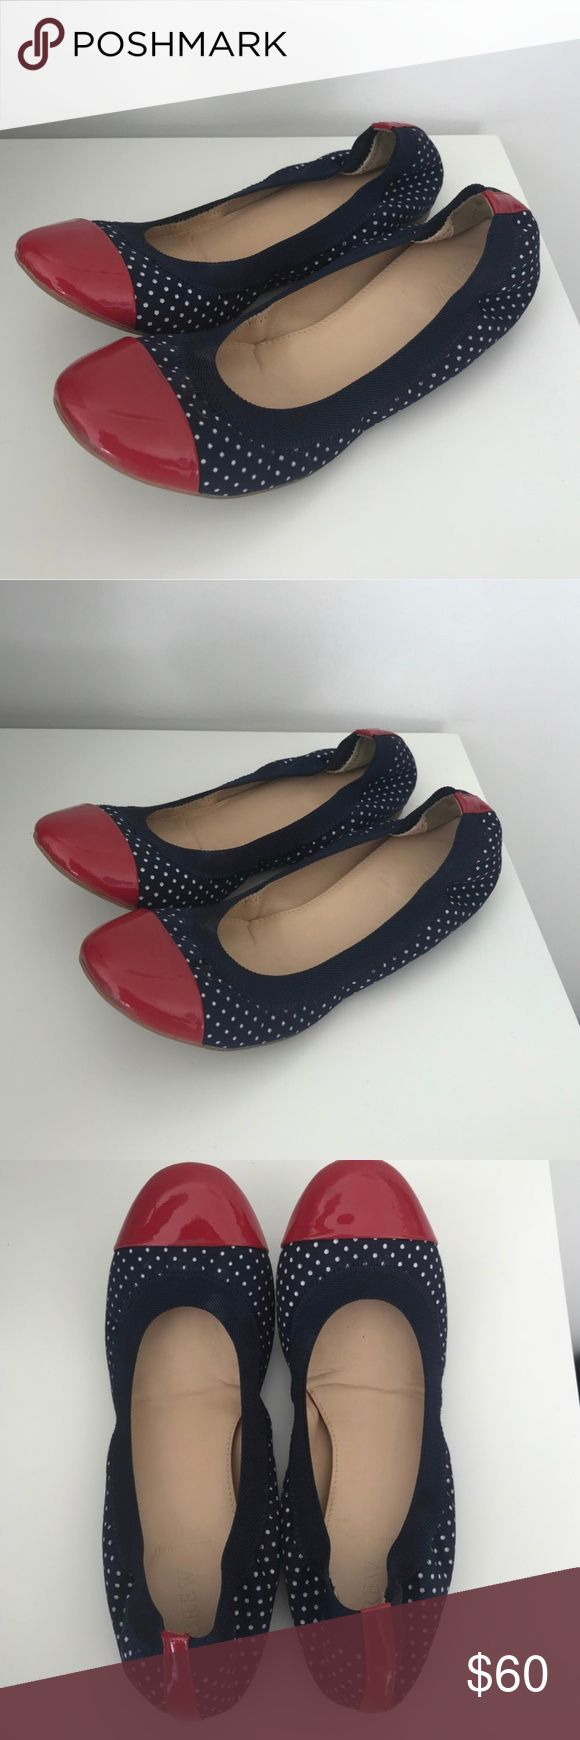 J.Crew Polka Dot red white & blue Ballet Flats Made in Italy. JCrew ballet flats. Red white and blue. In good condition; worn only a handful of times.  Looks great with blue jeans or a flowy skirt. Will be a great addition to your spring wardrobe! J. Crew Shoes Flats & Loafers